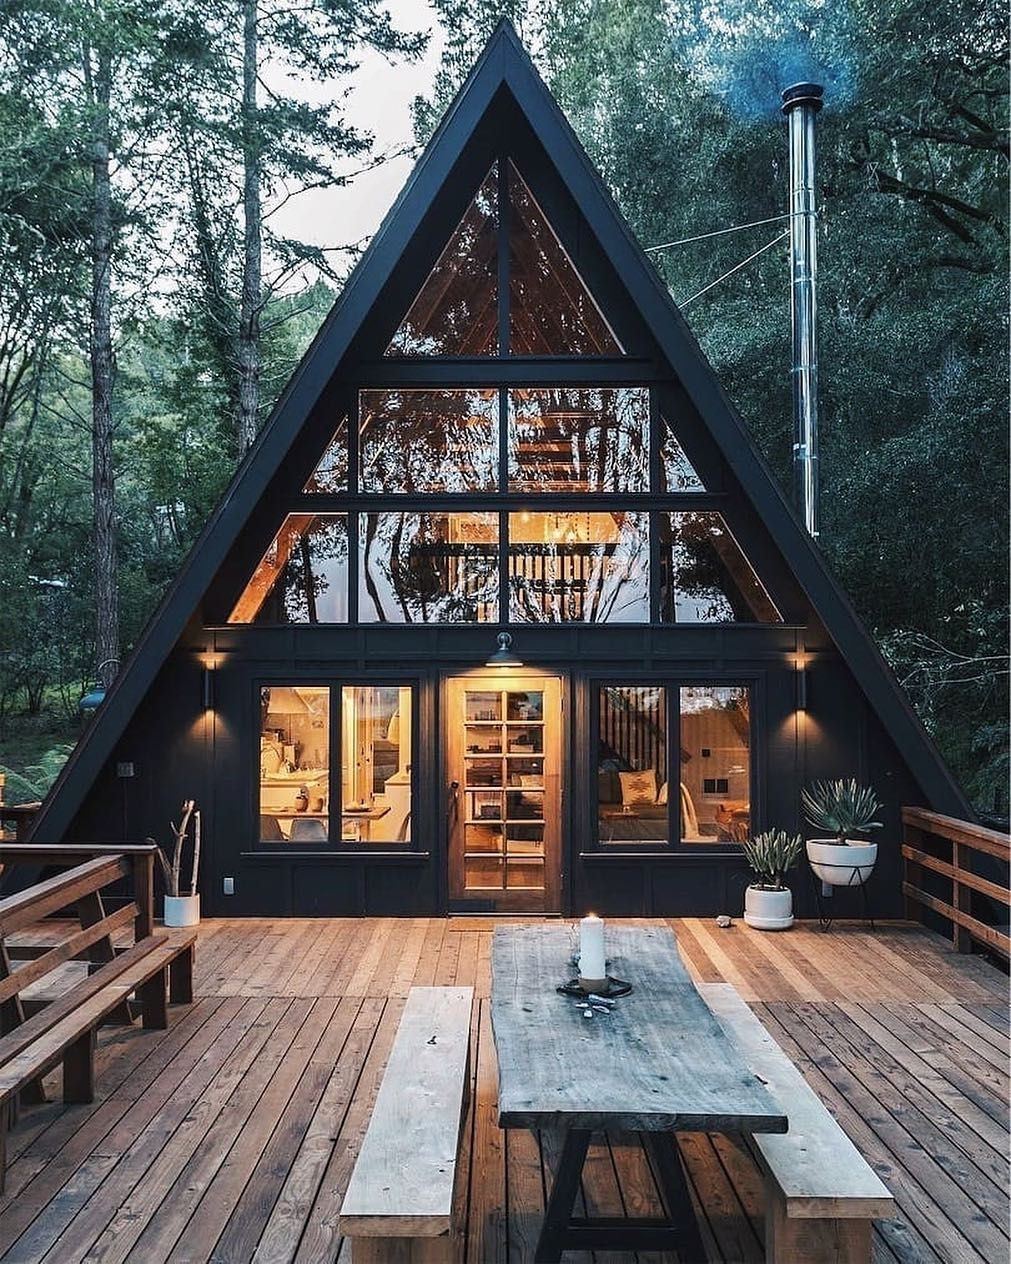 Ocenite Dizajn Ot 1 Do 10 A Frame Cabin Is Designed By Blythedesignco And Is Located A Frame House Plans House Exterior Tiny House Cabin